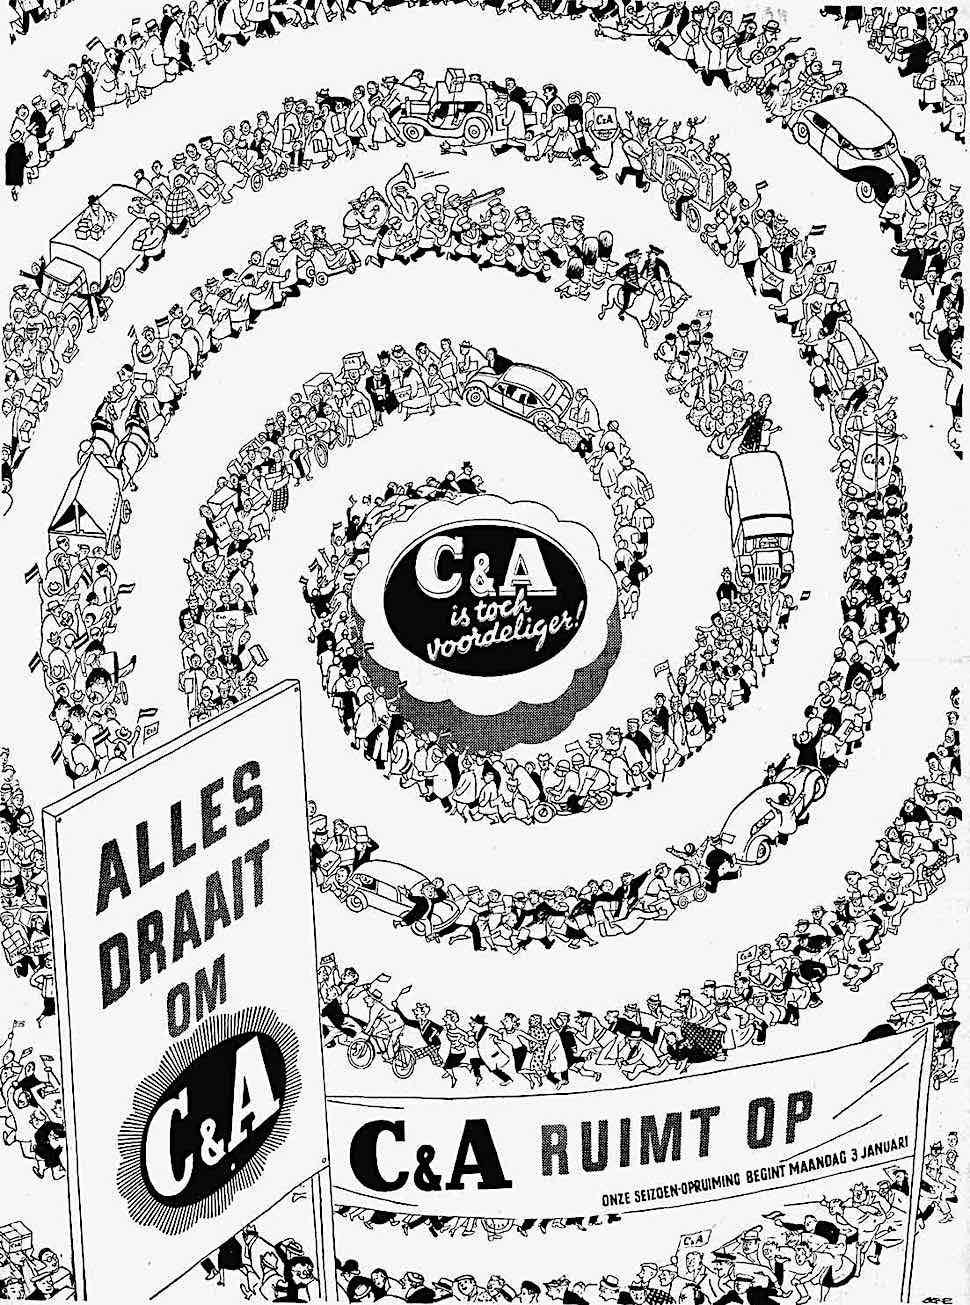 an advertising illustration by Eppo Doeve, C&A customers in a long spiral line